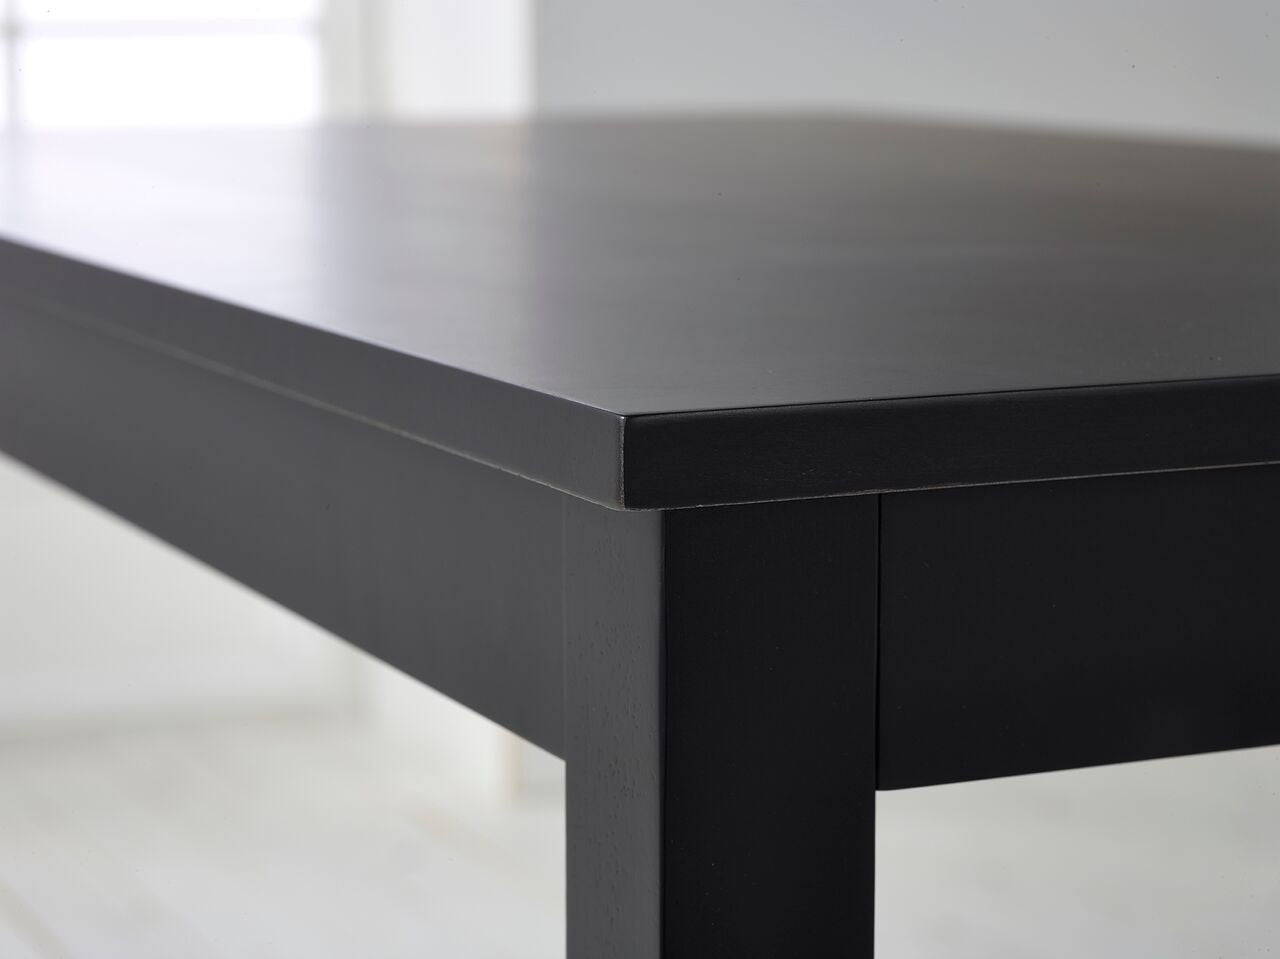 Exceptionnel ... Carmen Black Oak Dining Table With 4 Chairs   PACE LONDON LTD   3 ...